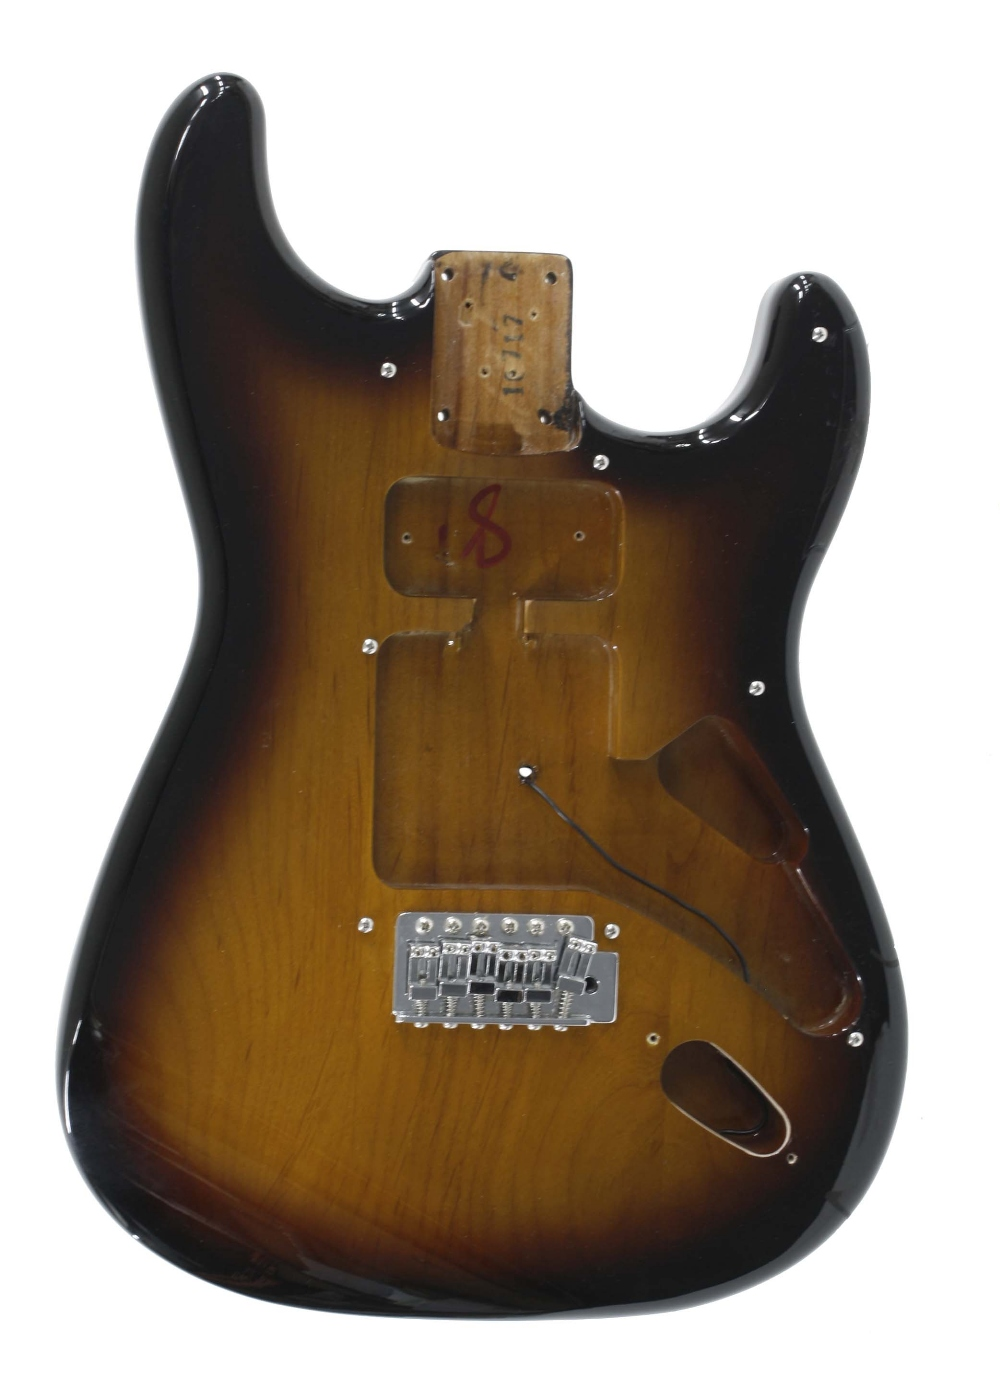 Sunburst finish alder Strat style guitar body, sold with bridge, strap buttons and various screws